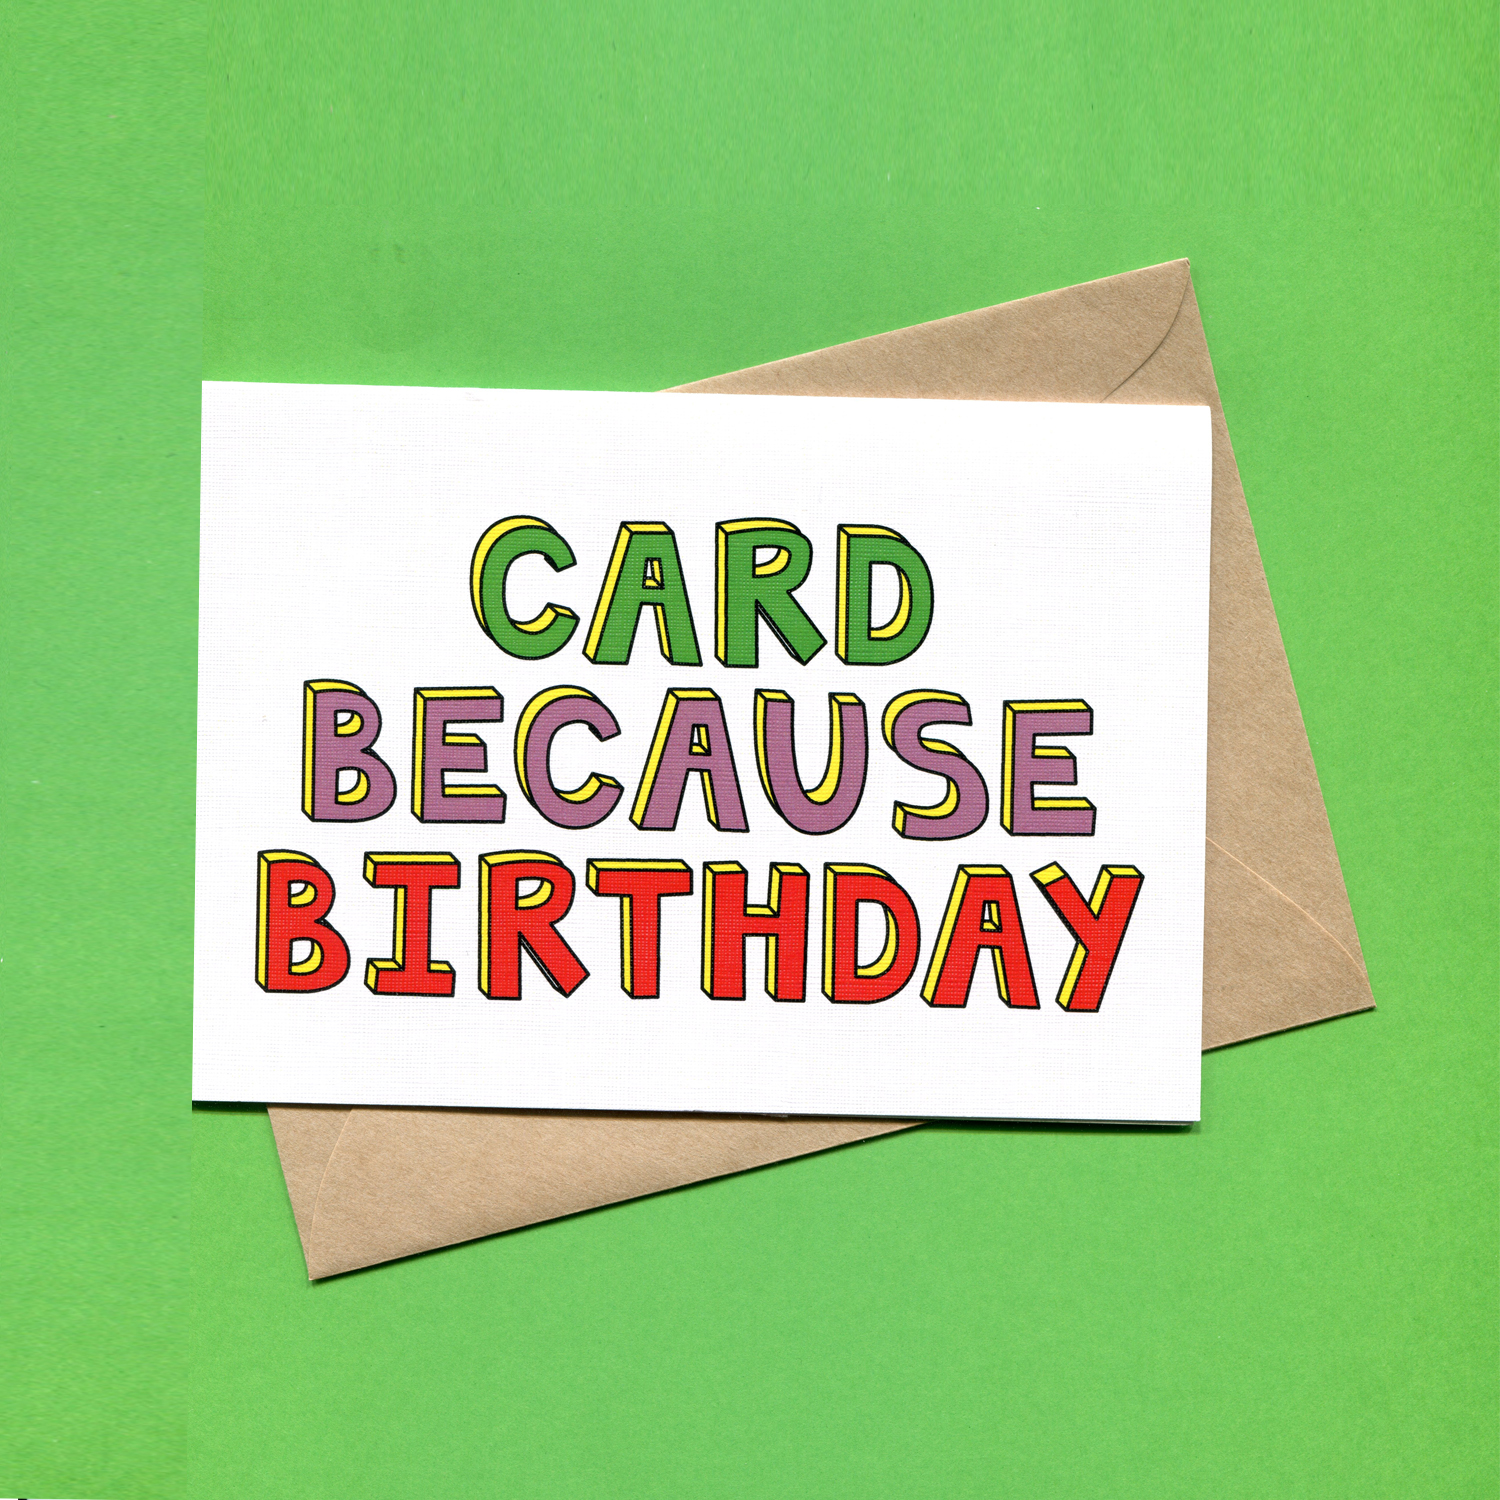 Catalogue_Things by Bean Card Because Birthday Greeting Card.jpg